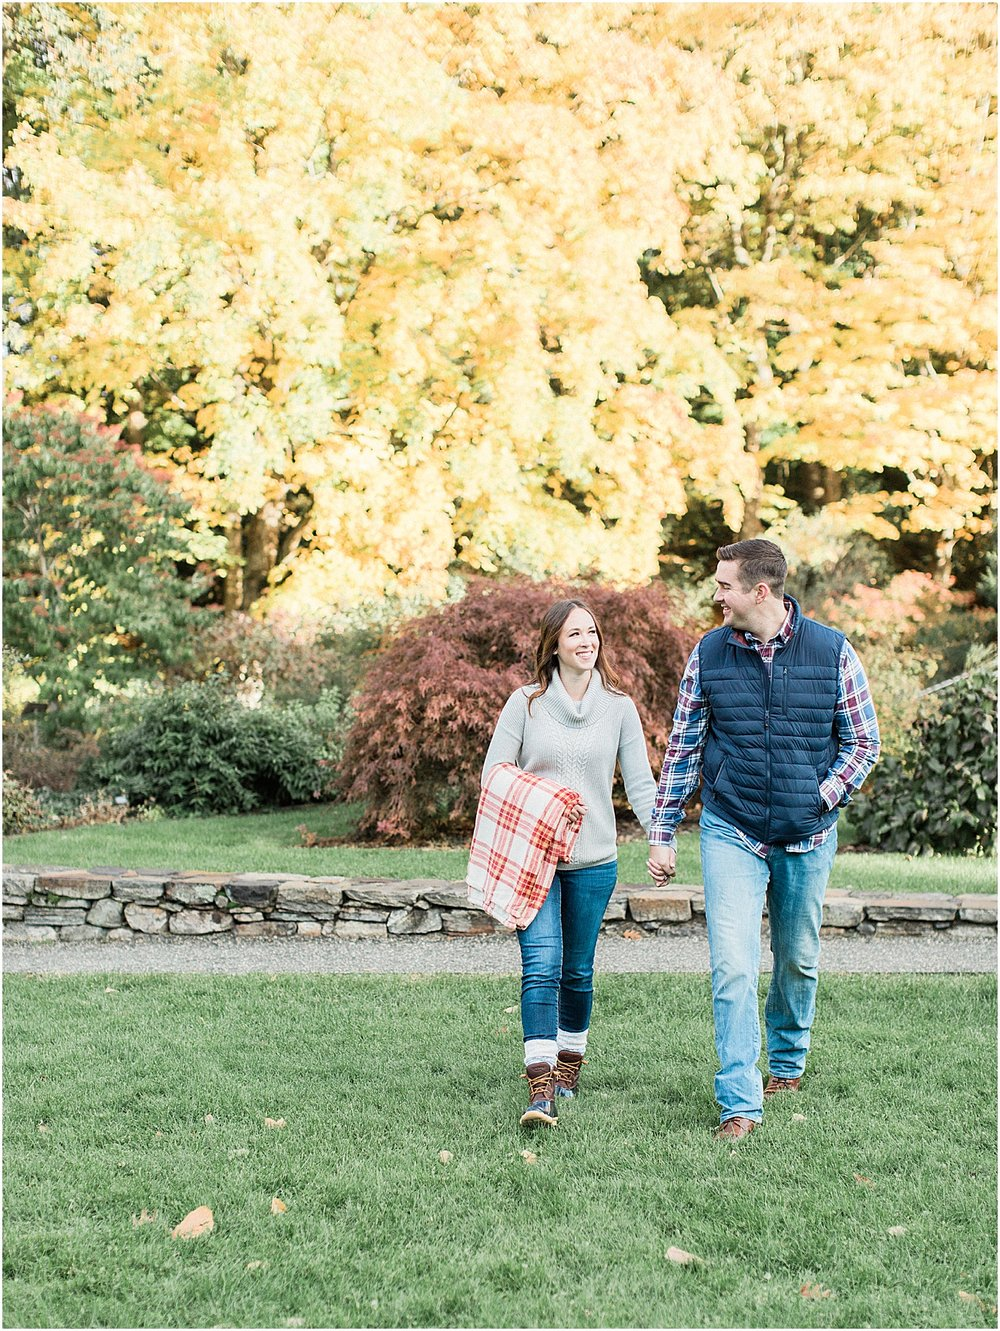 jessica_john_engagement_arnold_arboretum_fall_cape_cod_boston_wedding_photographer_meredith_jane_photography_photo_1711.jpg